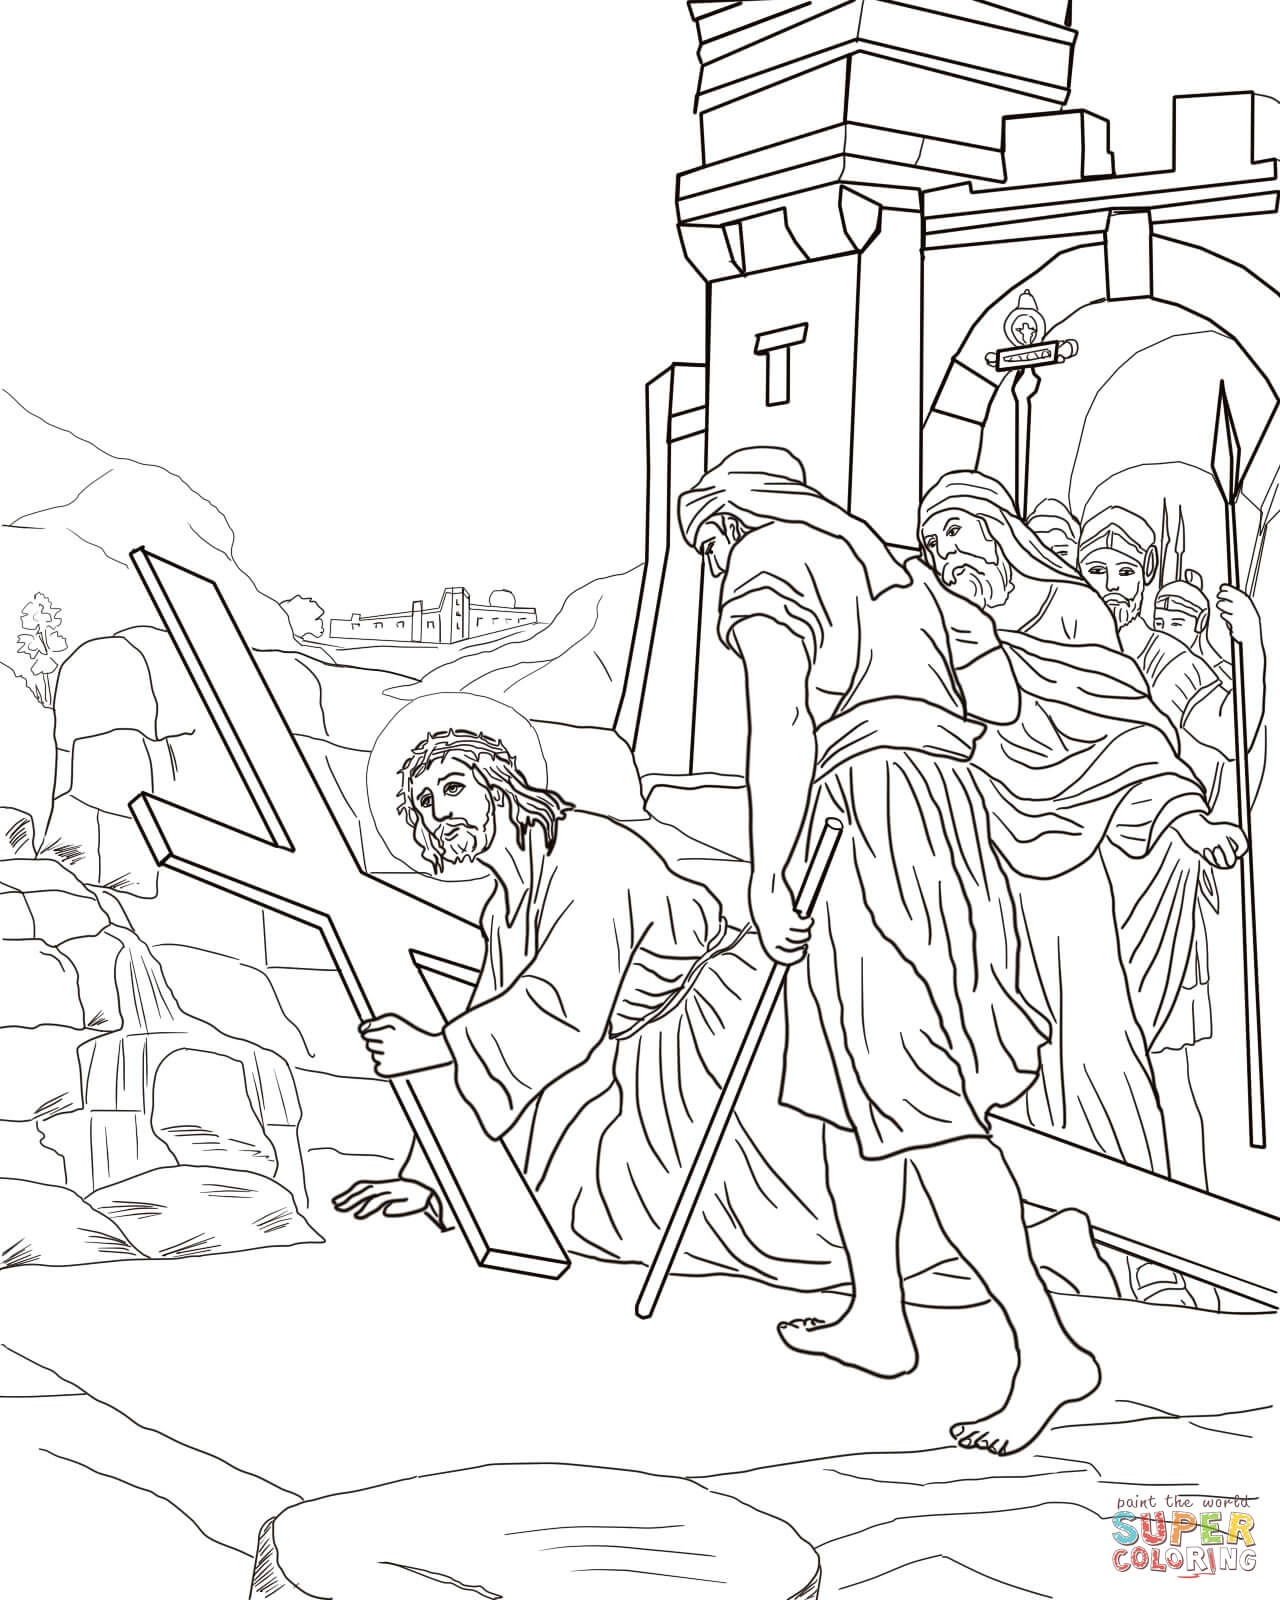 Good Friday Coloring Pages | Free Coloring Pages - Free Printable Good Friday Coloring Pages